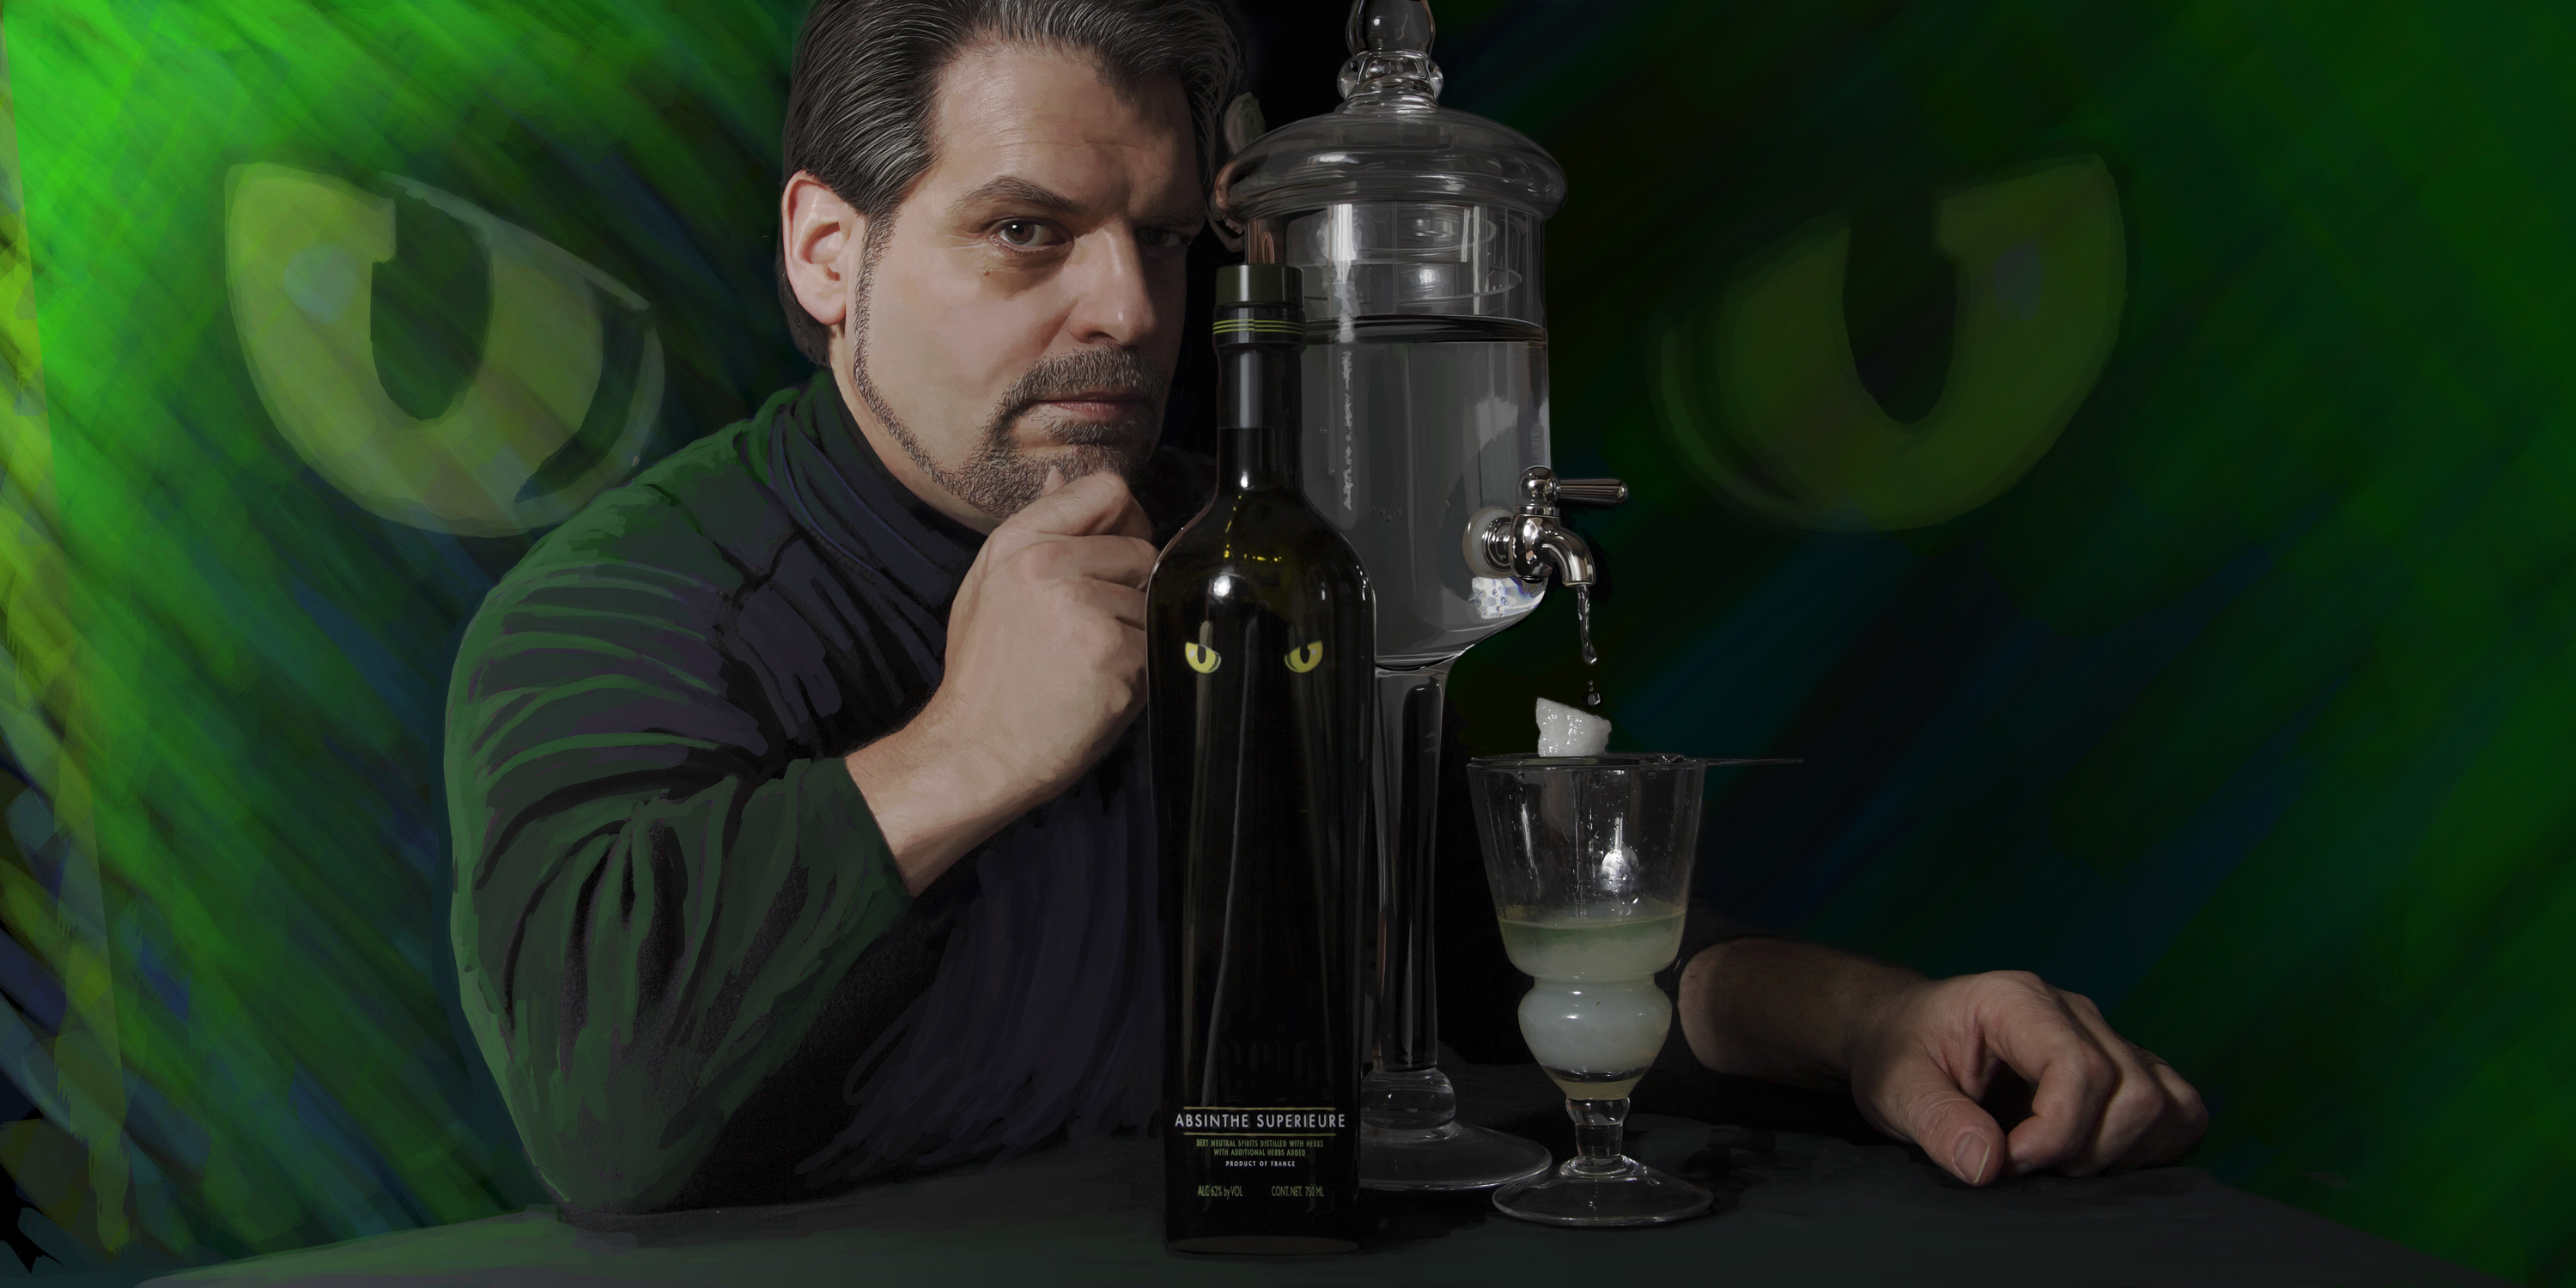 Mysterious_absinthe_drinker_web_site_bxtdcc